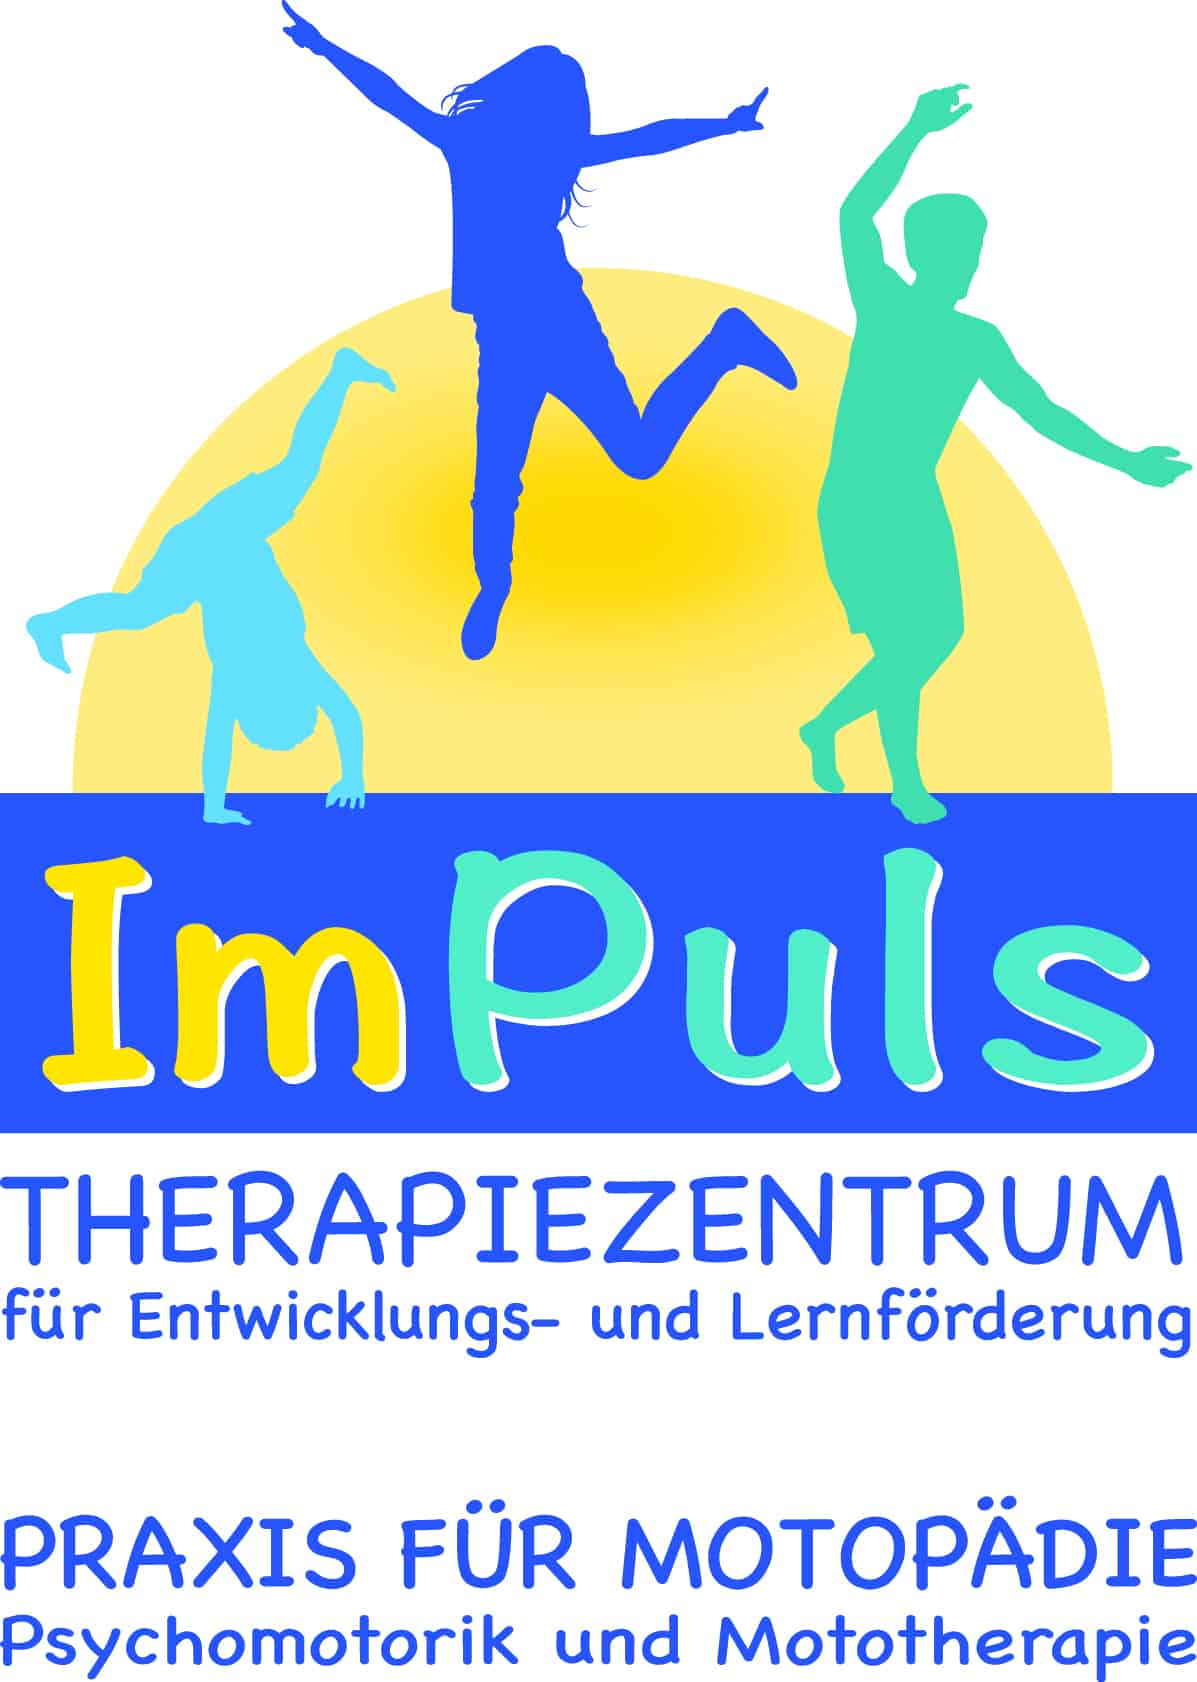 ImPuls Therapiezentrum